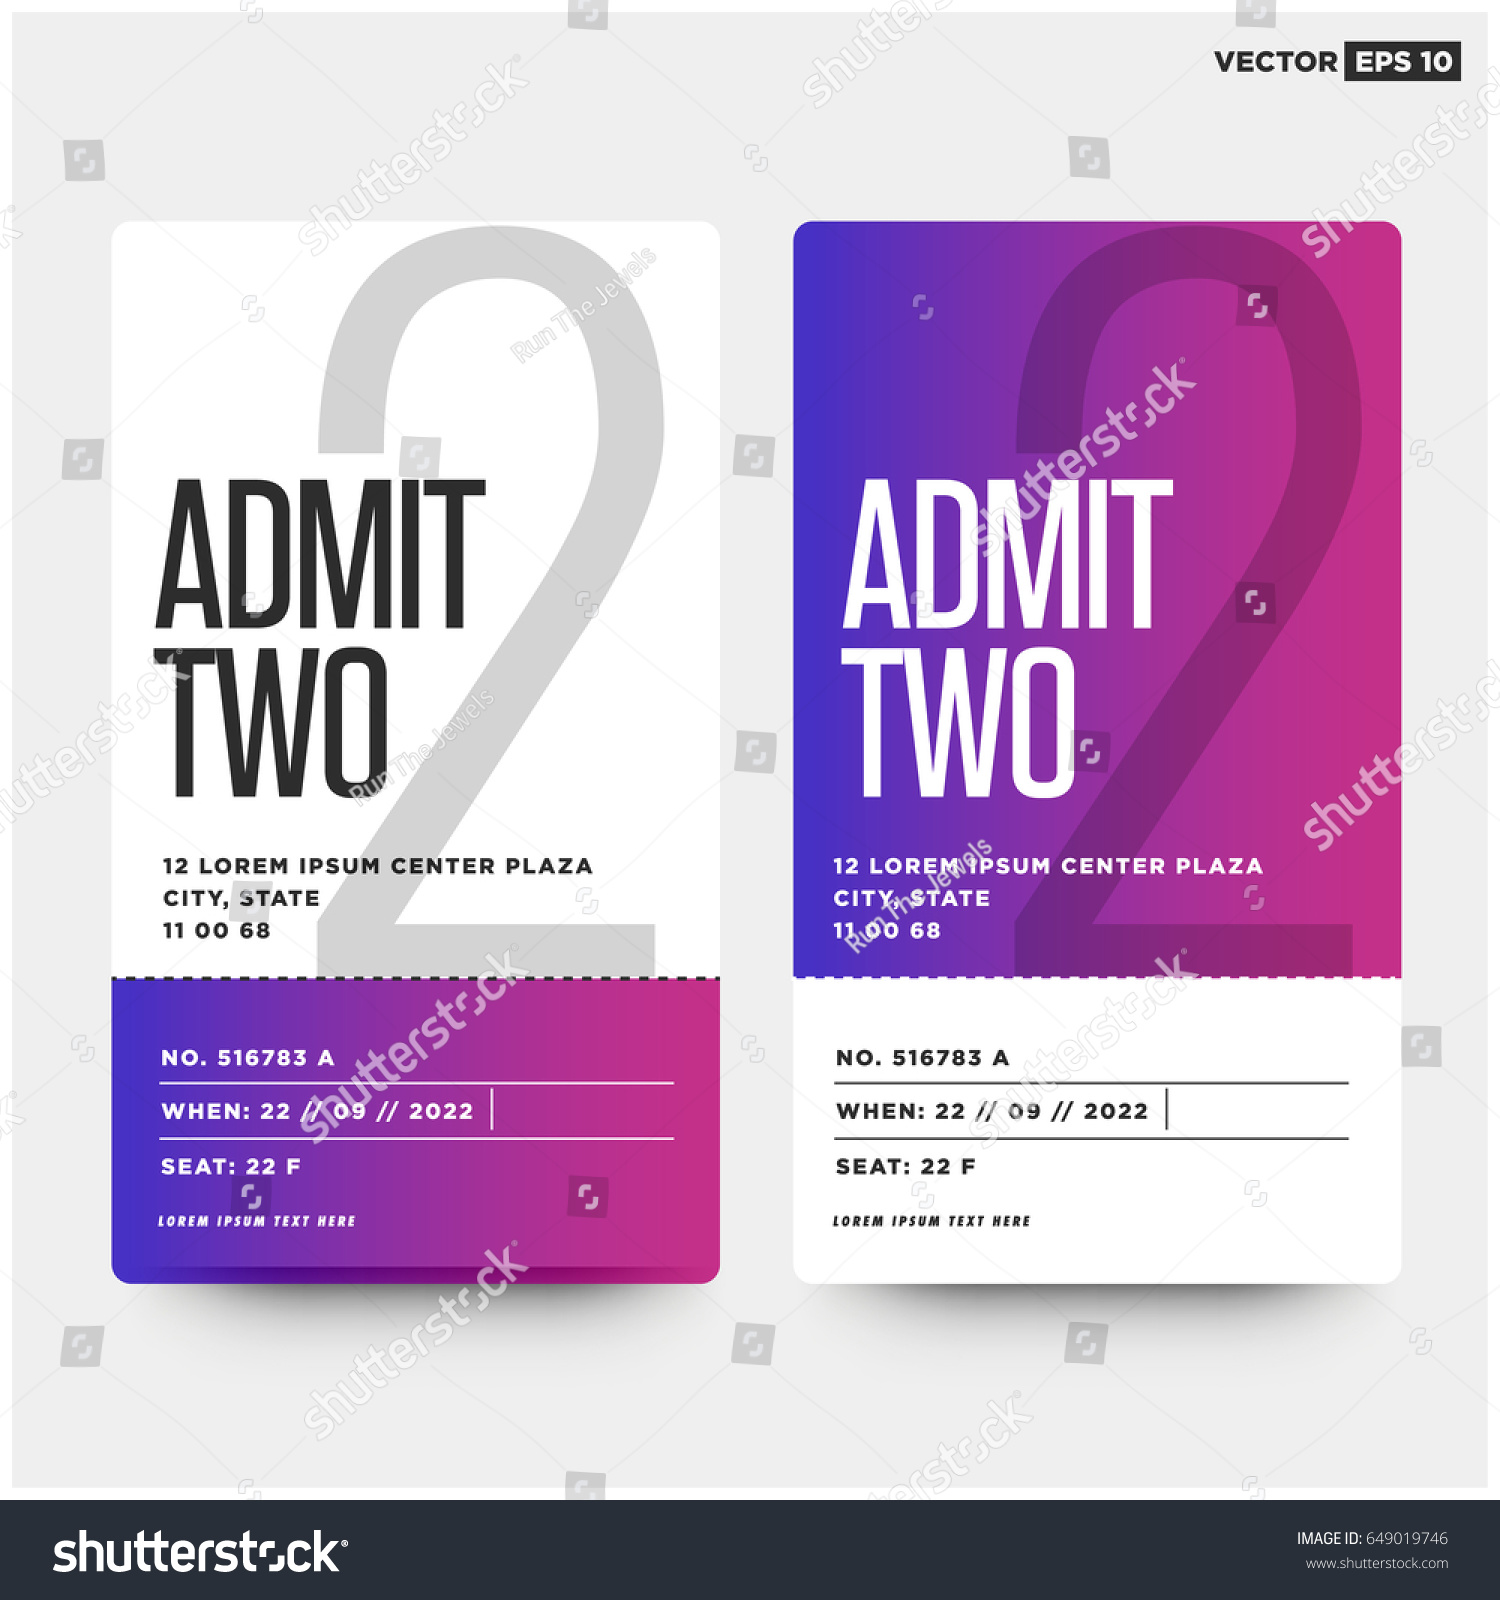 Admit Two Entrance Ticket Template Live Stock Vector 649019746